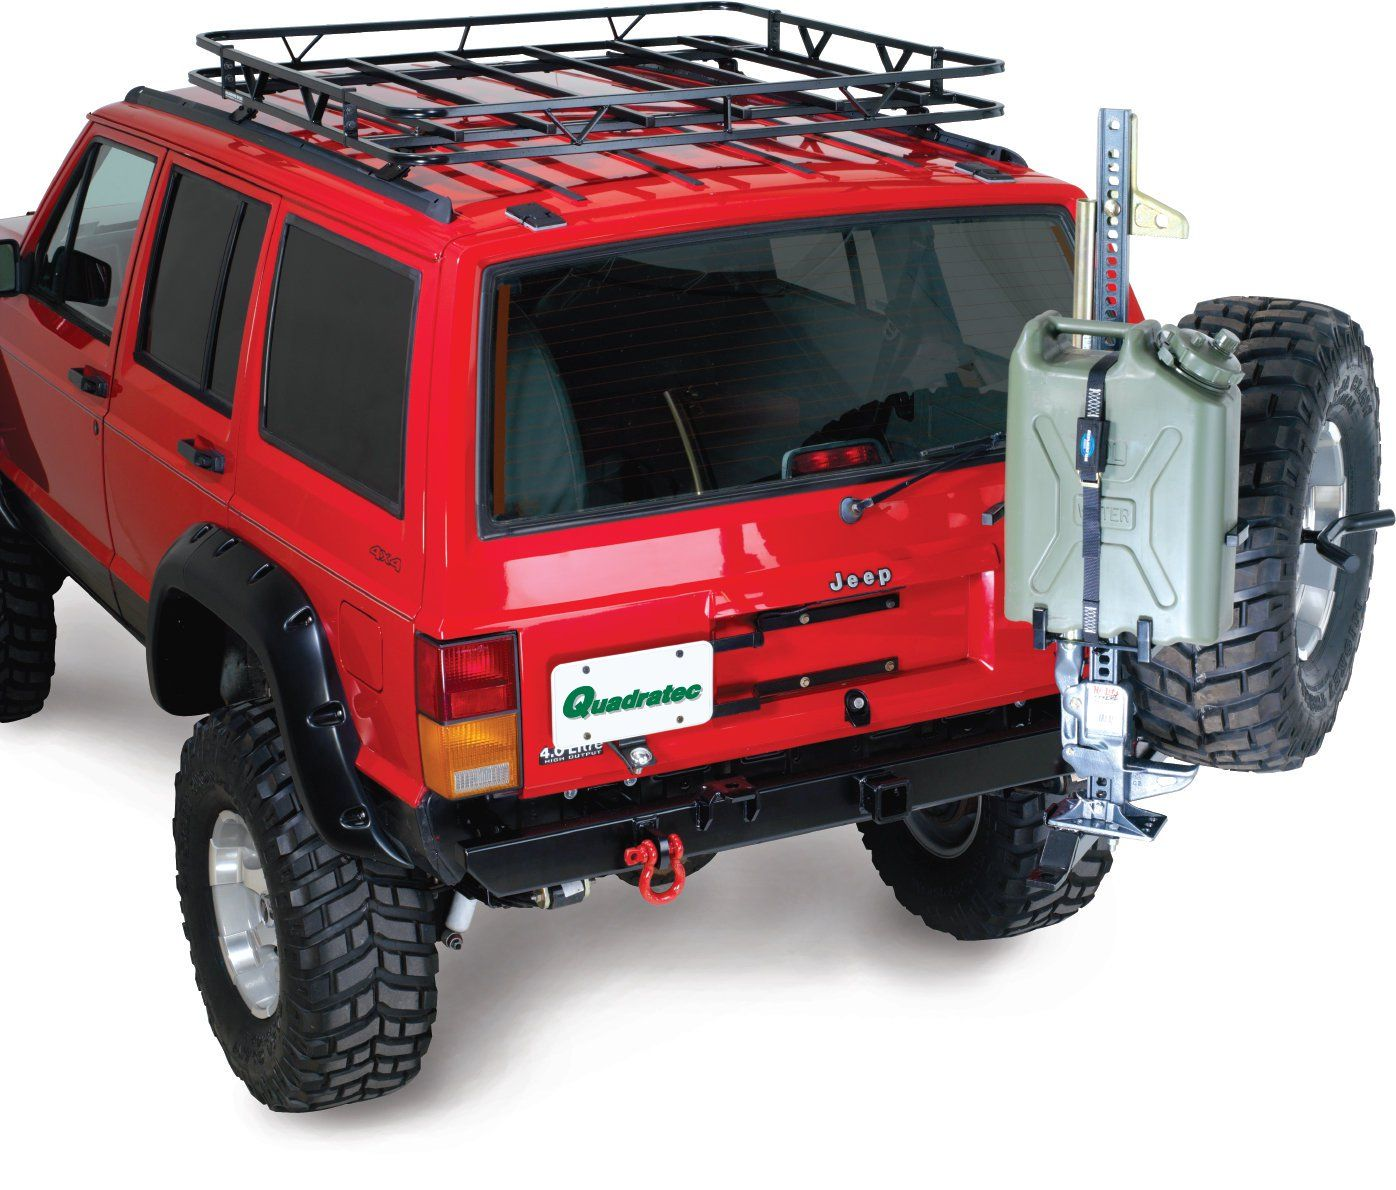 This Gerry Can Mount Accessory For Your Garvin Swing Away Tire System P N 34800 Allows You To Carry 5 Gallon Gerry Cans Jeep Xj Jeep Cherokee Xj Jeep Cherokee